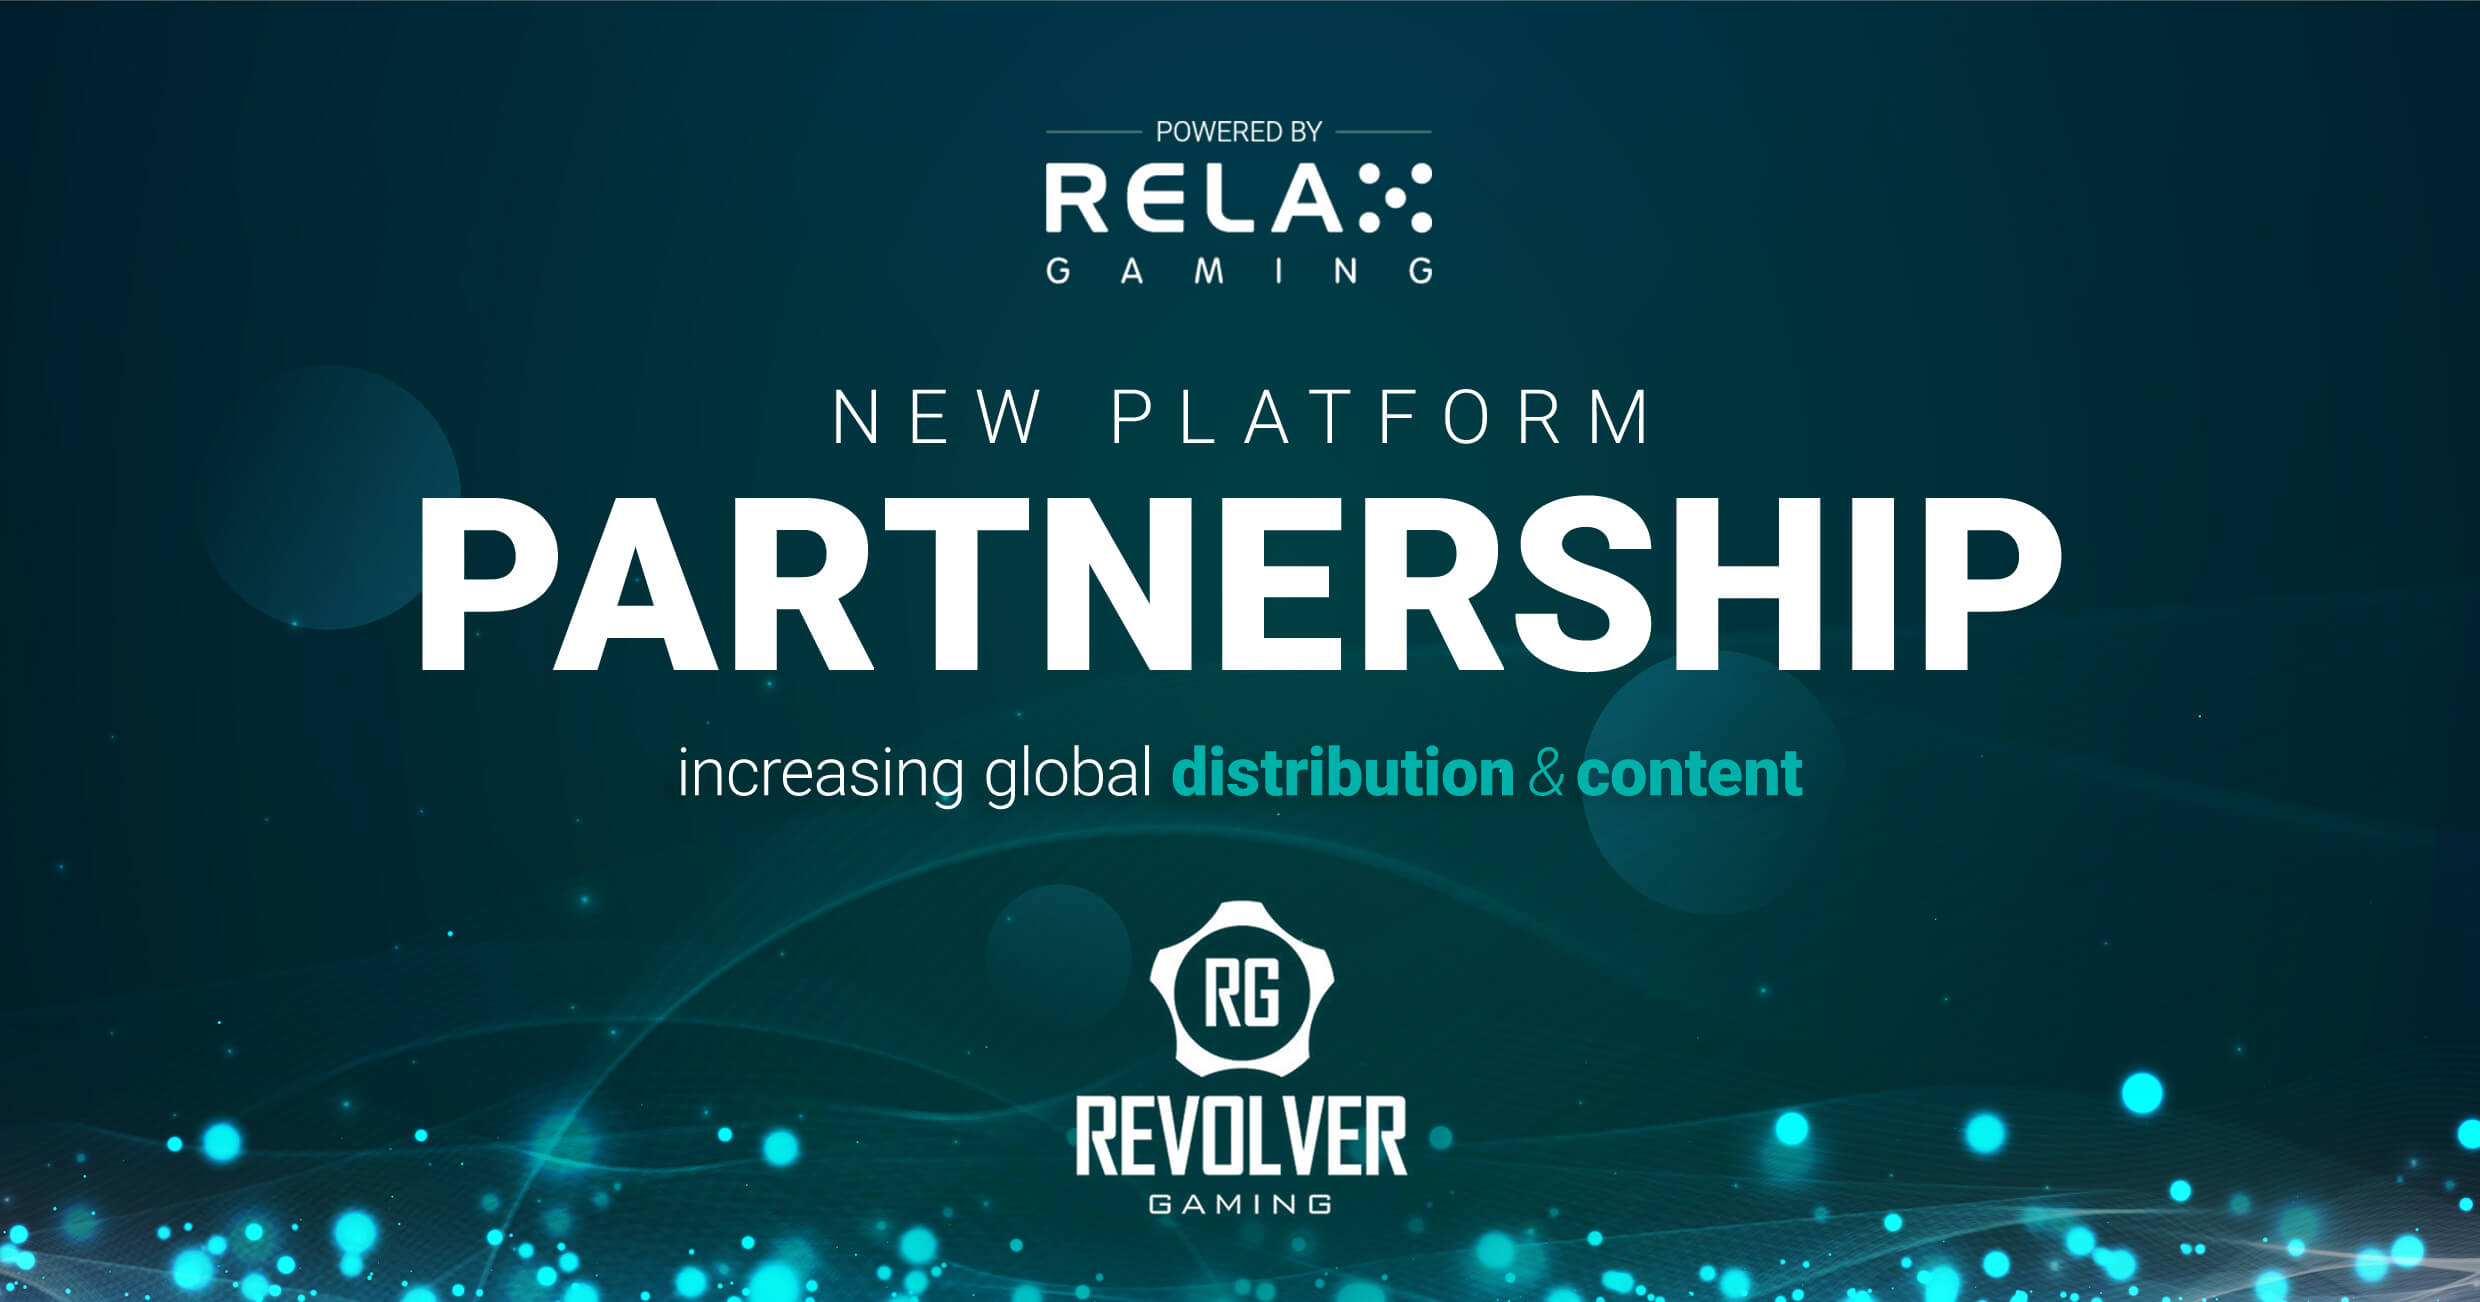 Relax Gaming signs Powered By partnership with Revolver Gaming